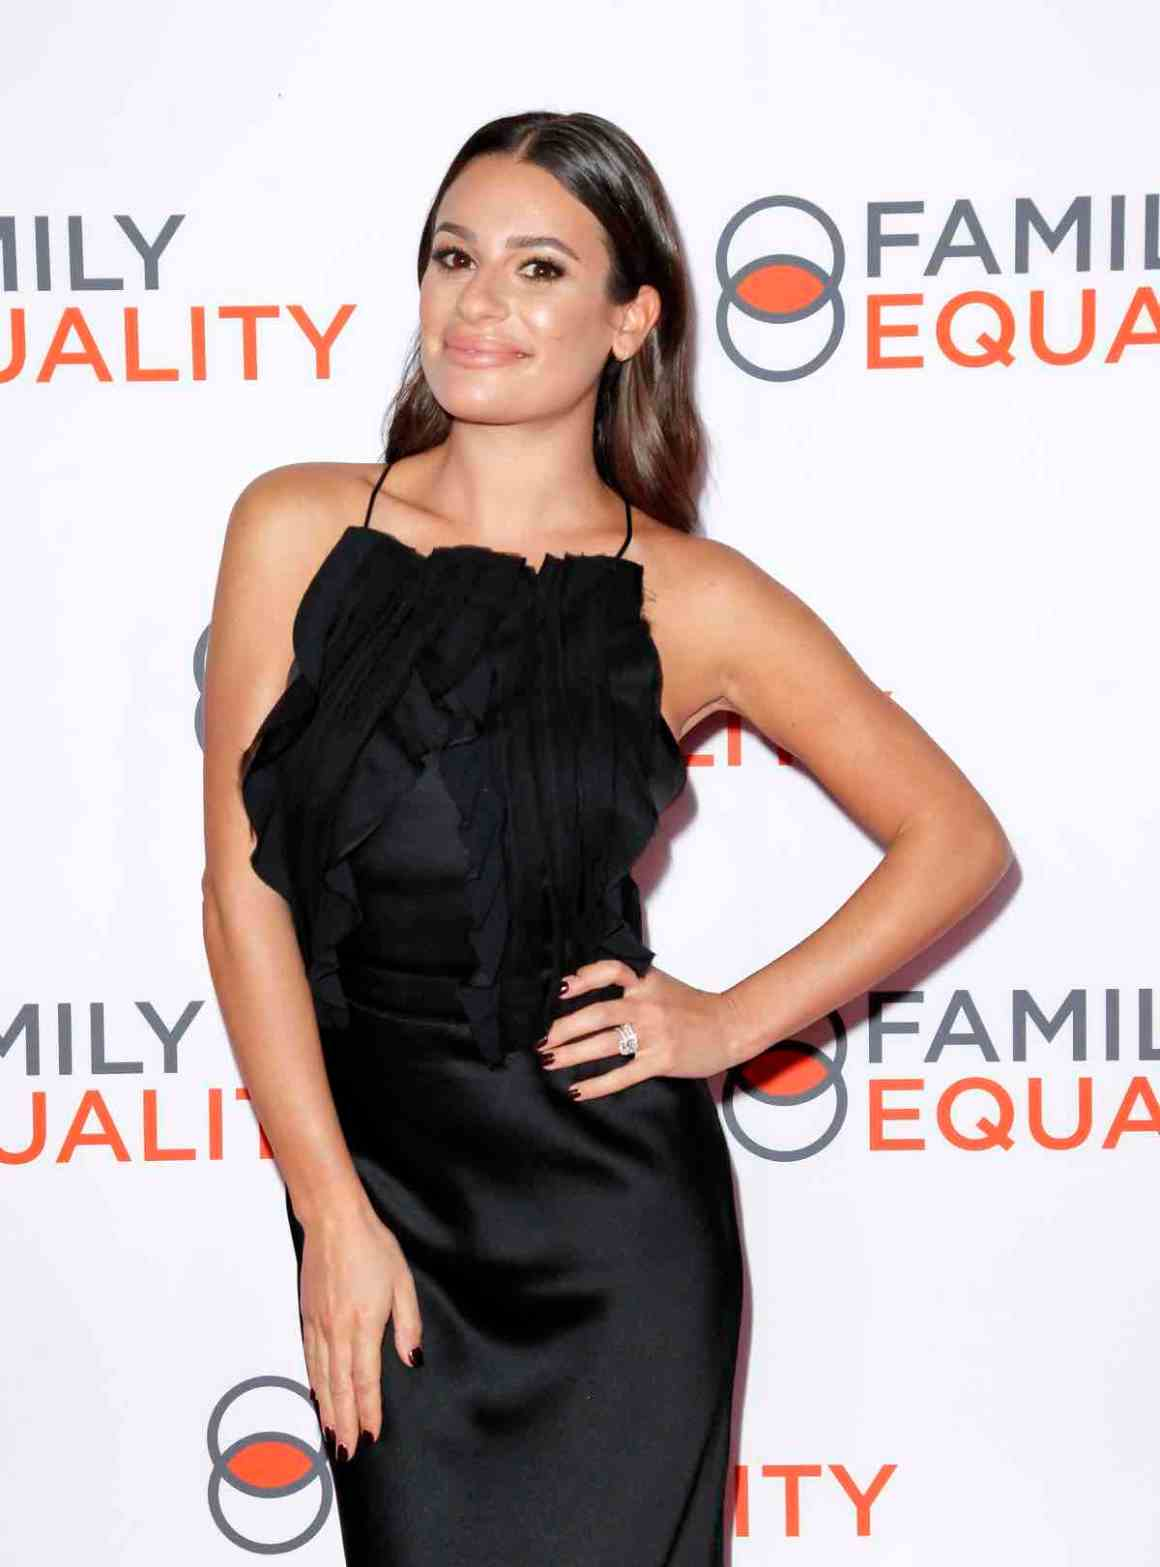 Lea Michele attends theFamily Equality Los Angeles Impact Awards 2019